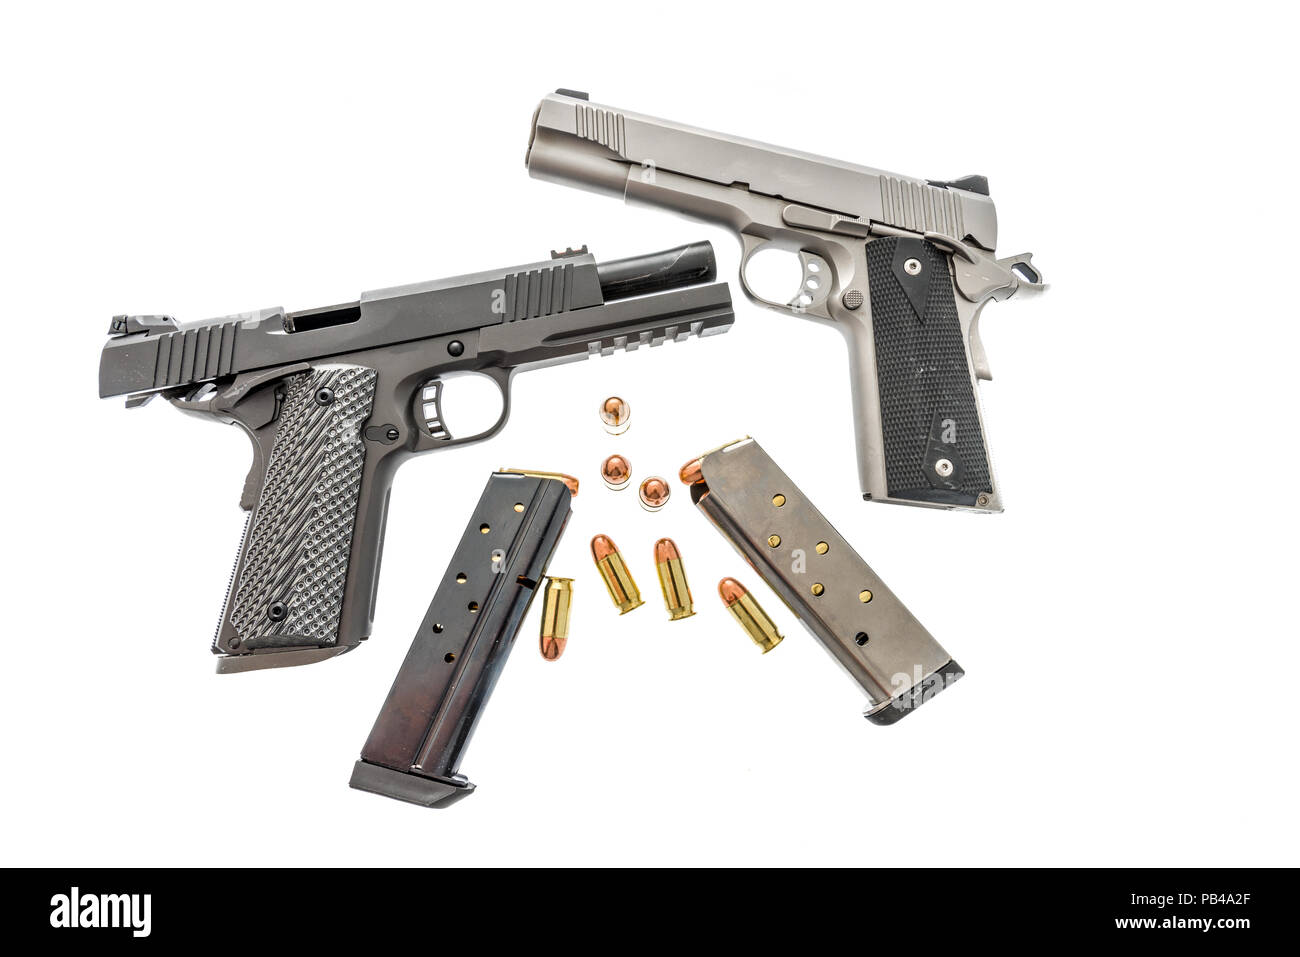 A pair of 1911s with clips and ammunition on an isolated background - Stock Image